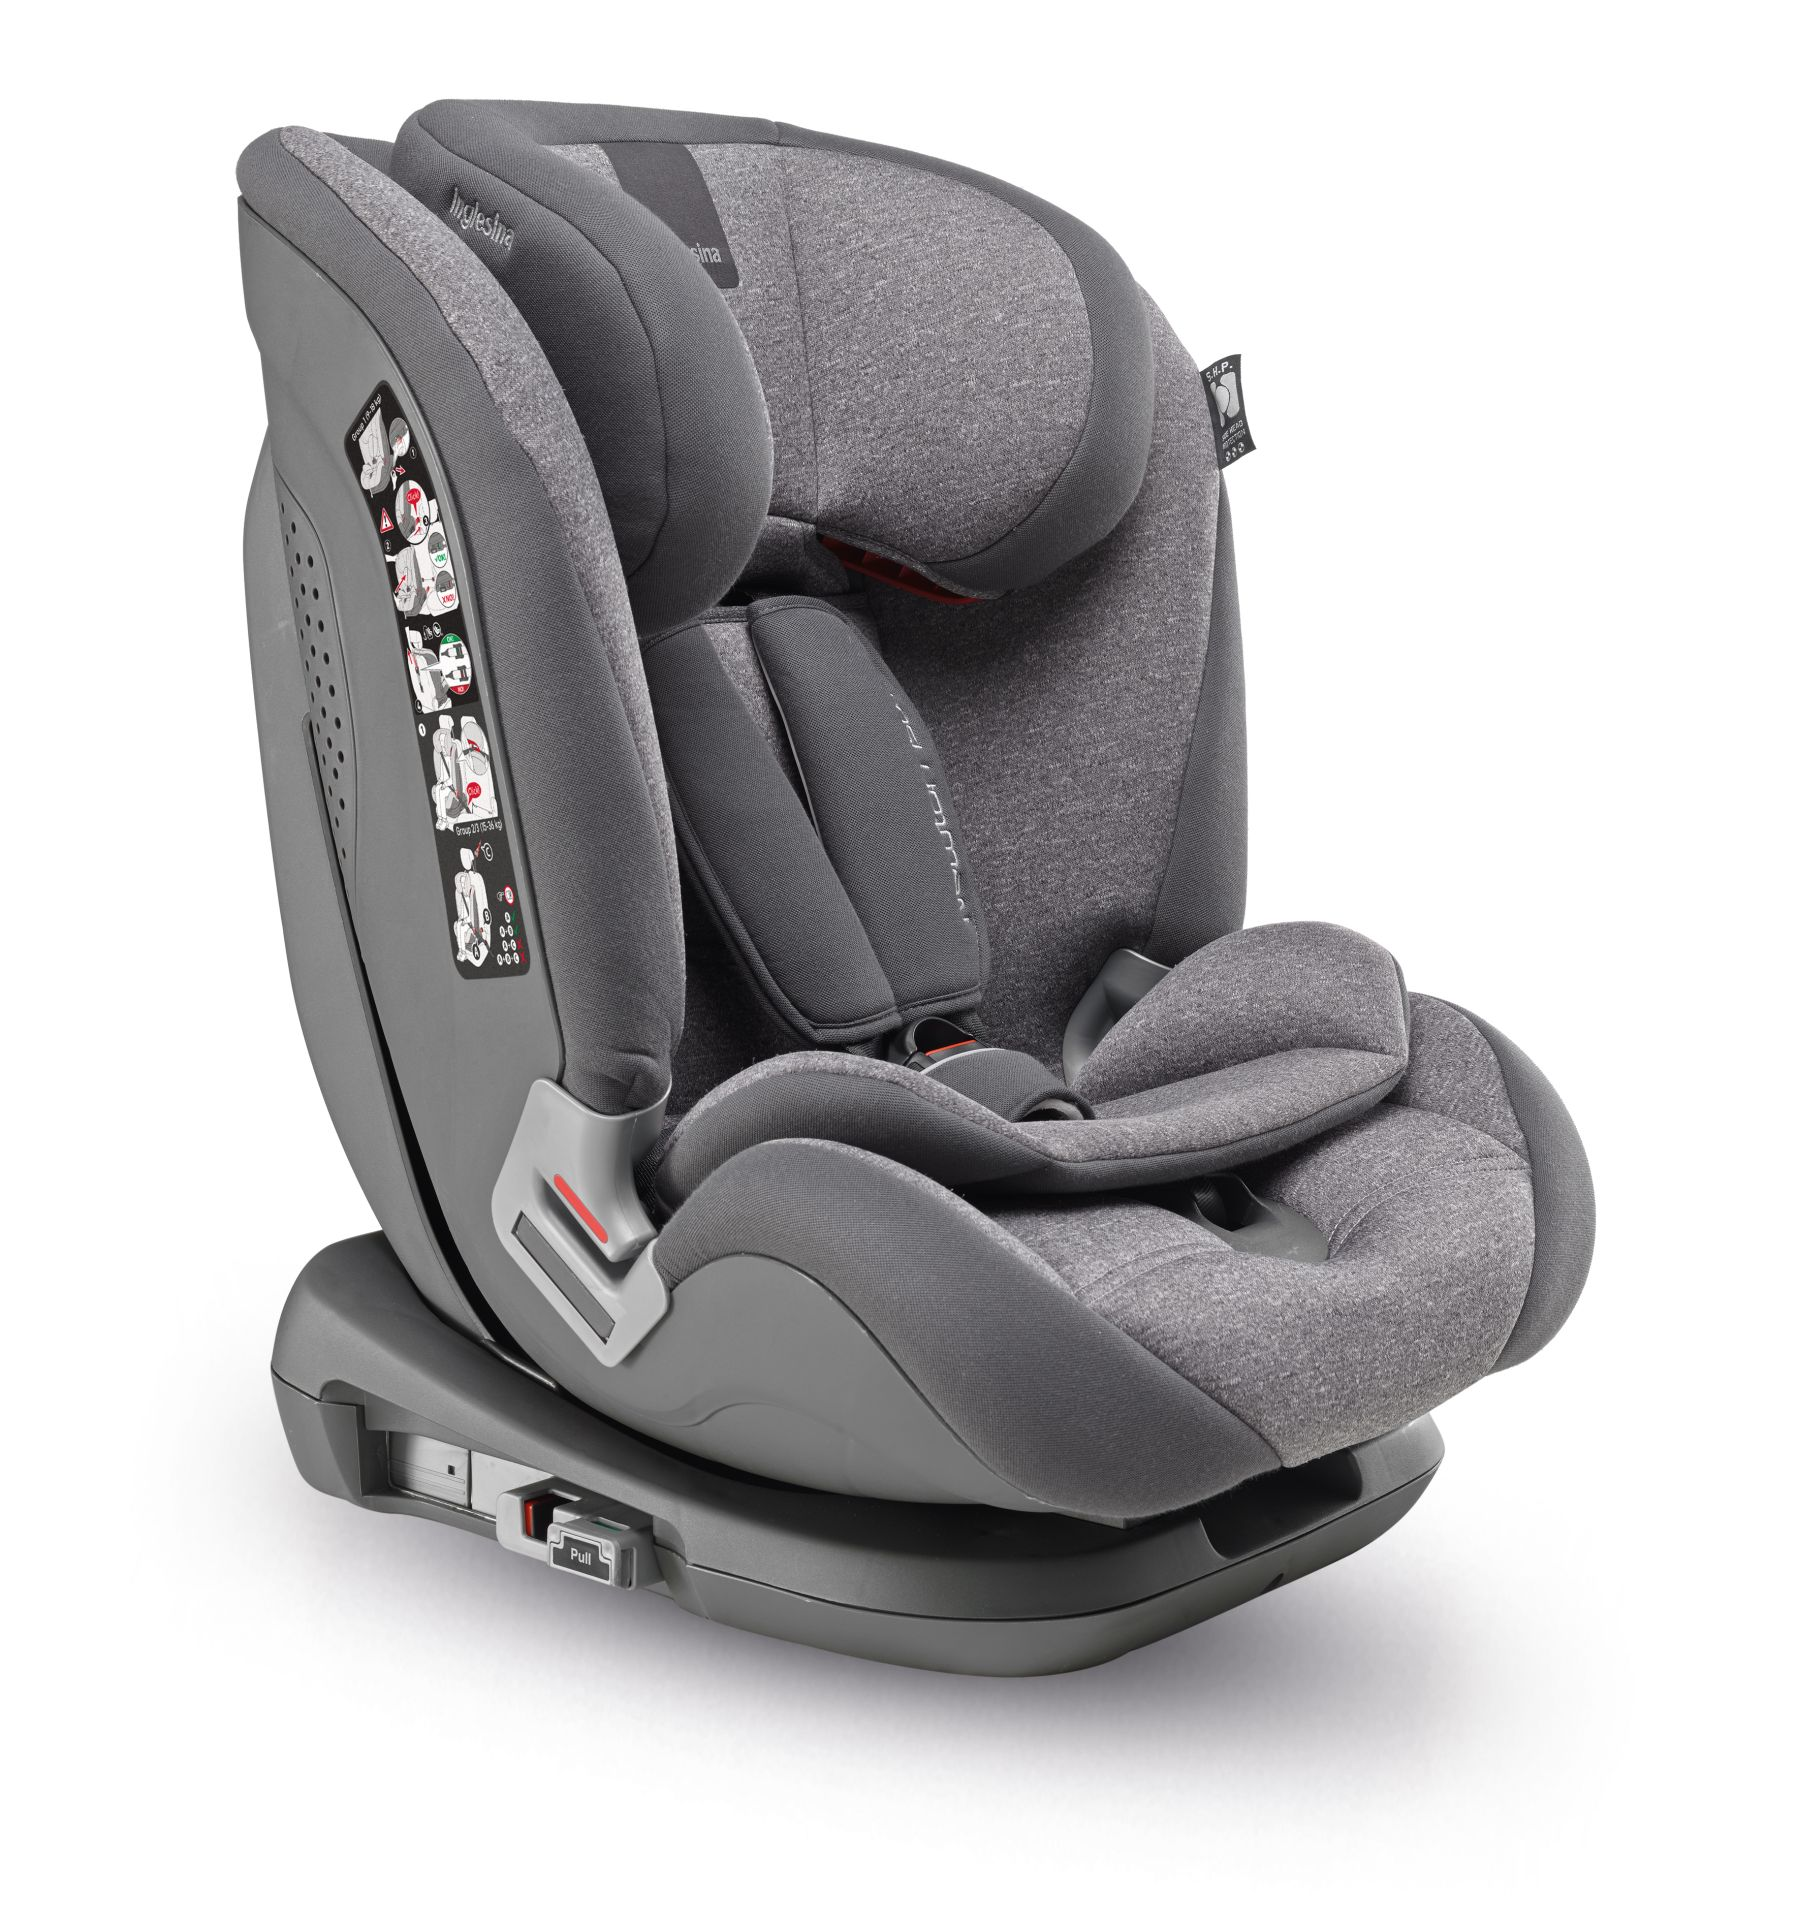 inglesina kindersitz newton 1 2 3 ifix buy at kidsroom car seats. Black Bedroom Furniture Sets. Home Design Ideas